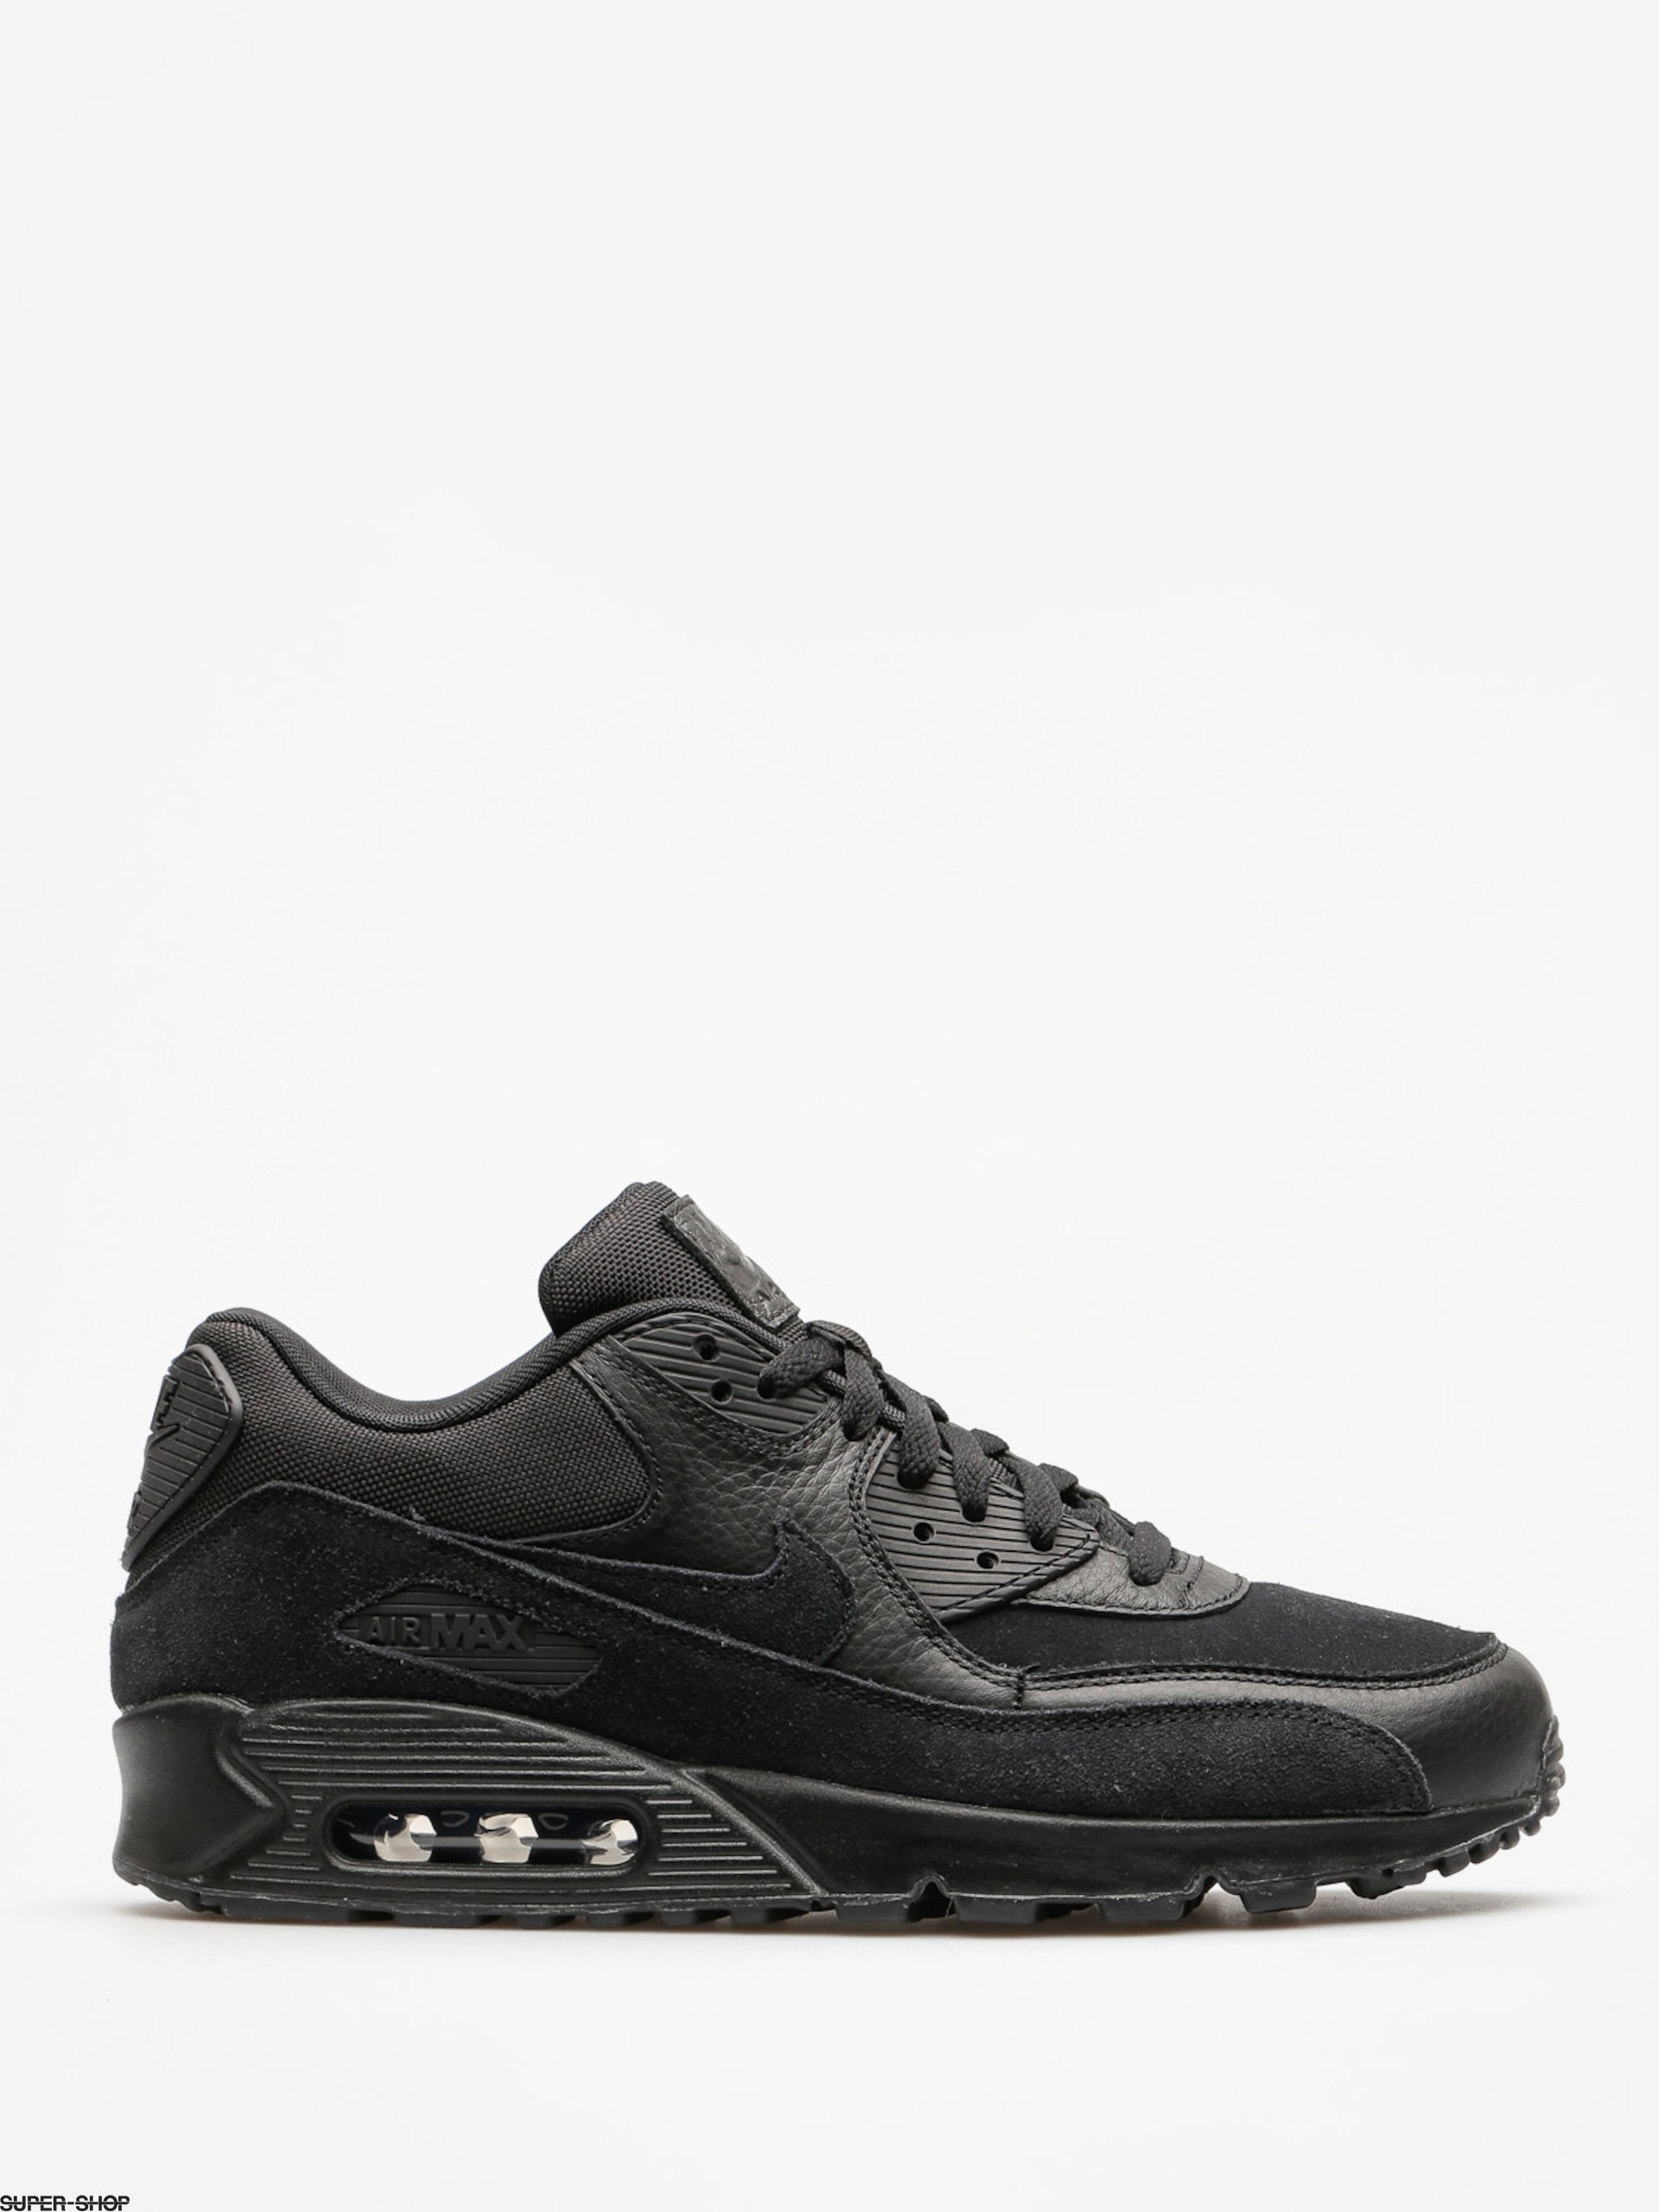 Nike Shoes Air Max 90 Premium (black/black)